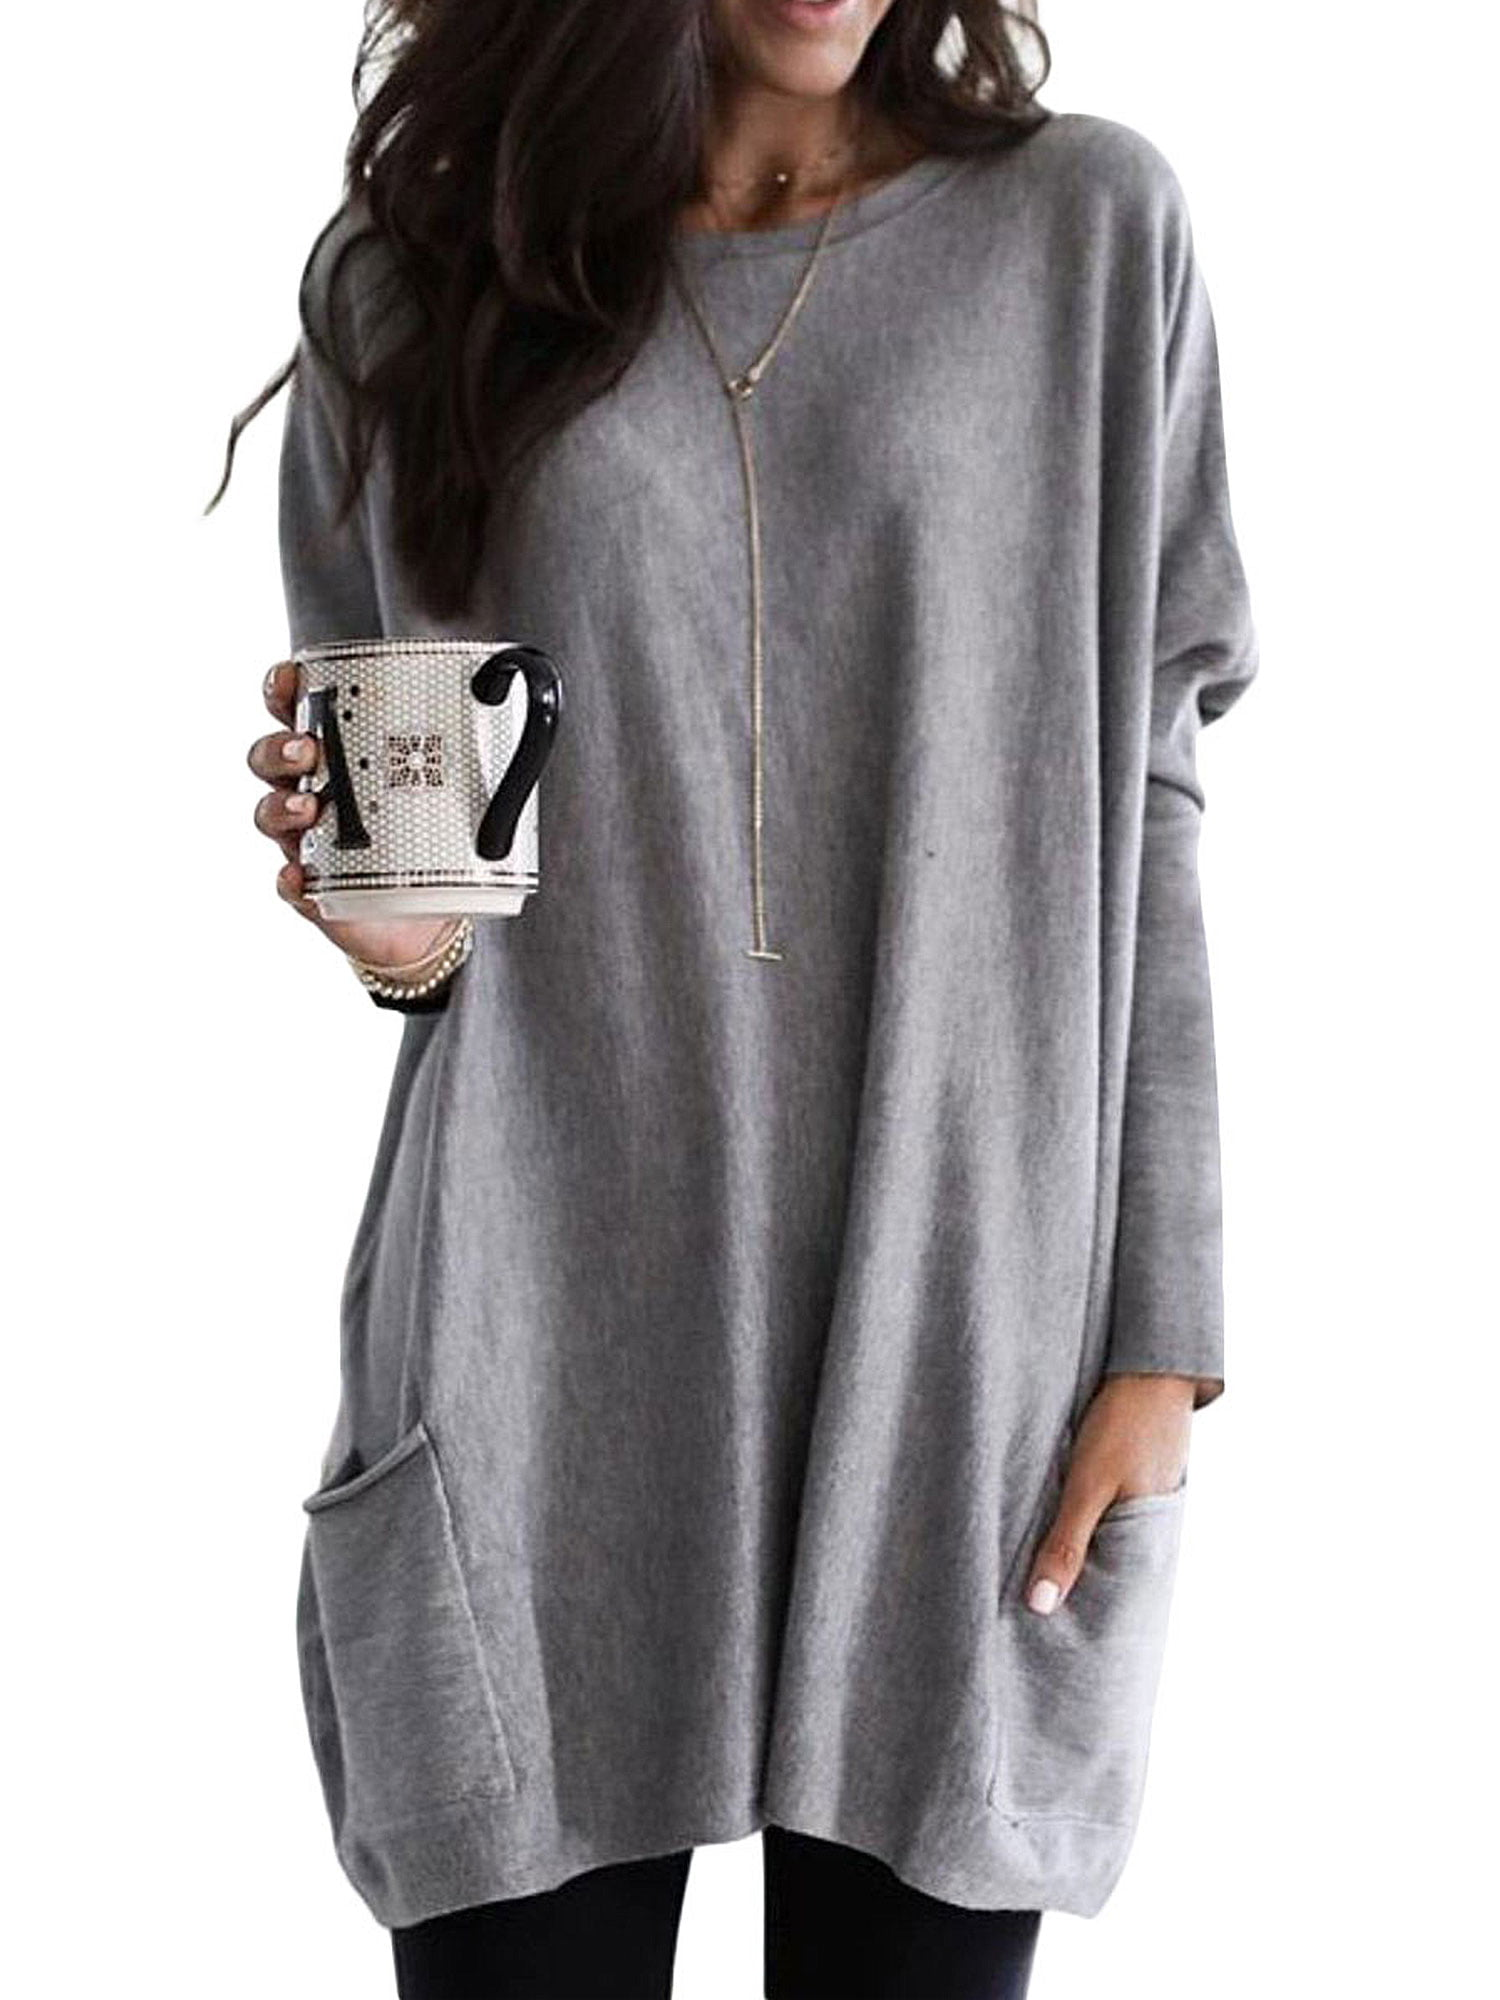 Womens Sweatshirt Dress Casual Loose Oversized Knitted Crewneck Pullover Long Tunic Pullover Blouse Tops Shirts Dress